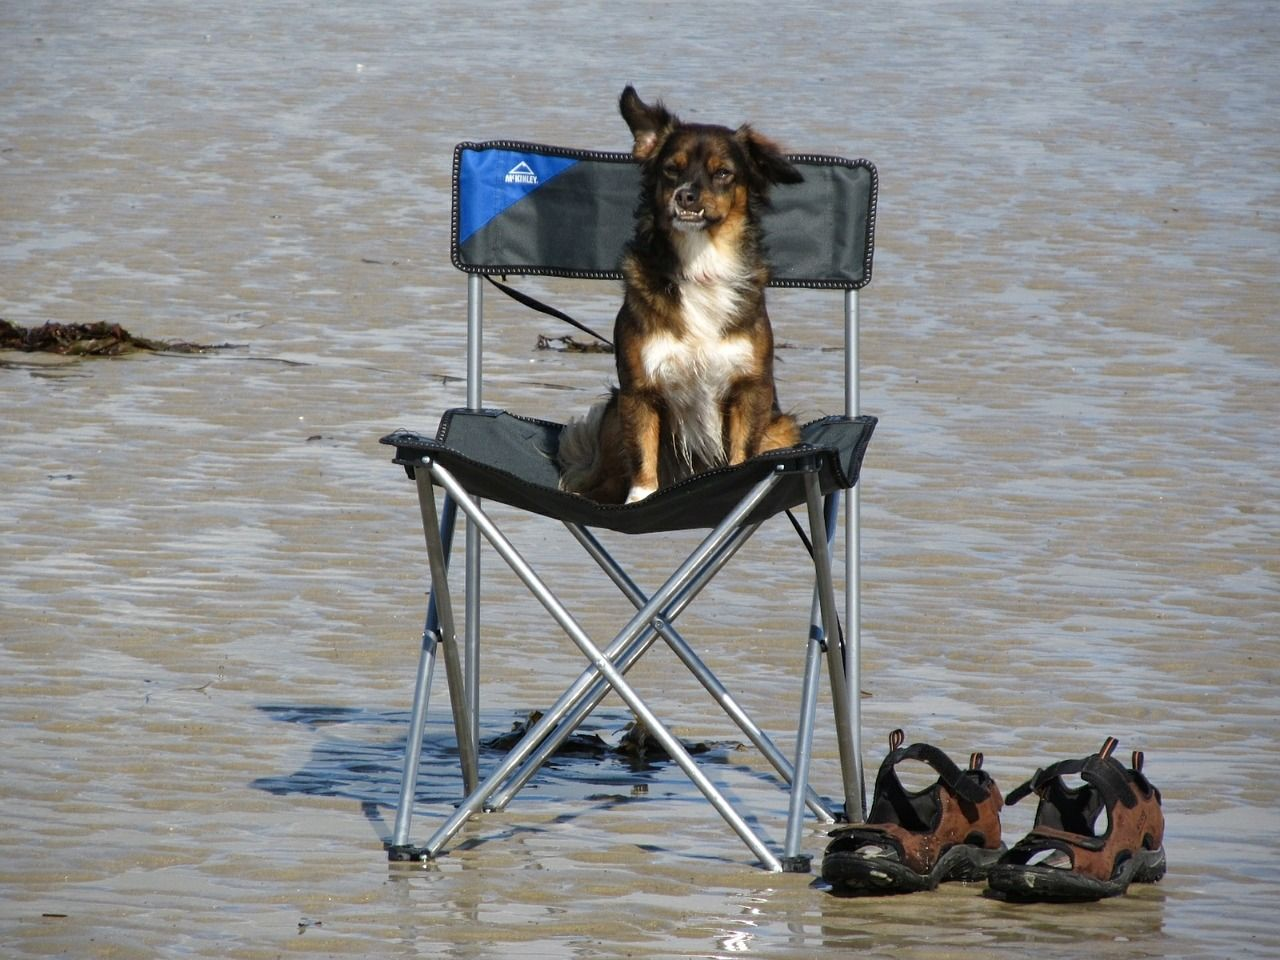 Dog on camping chair by the seaside.jpg